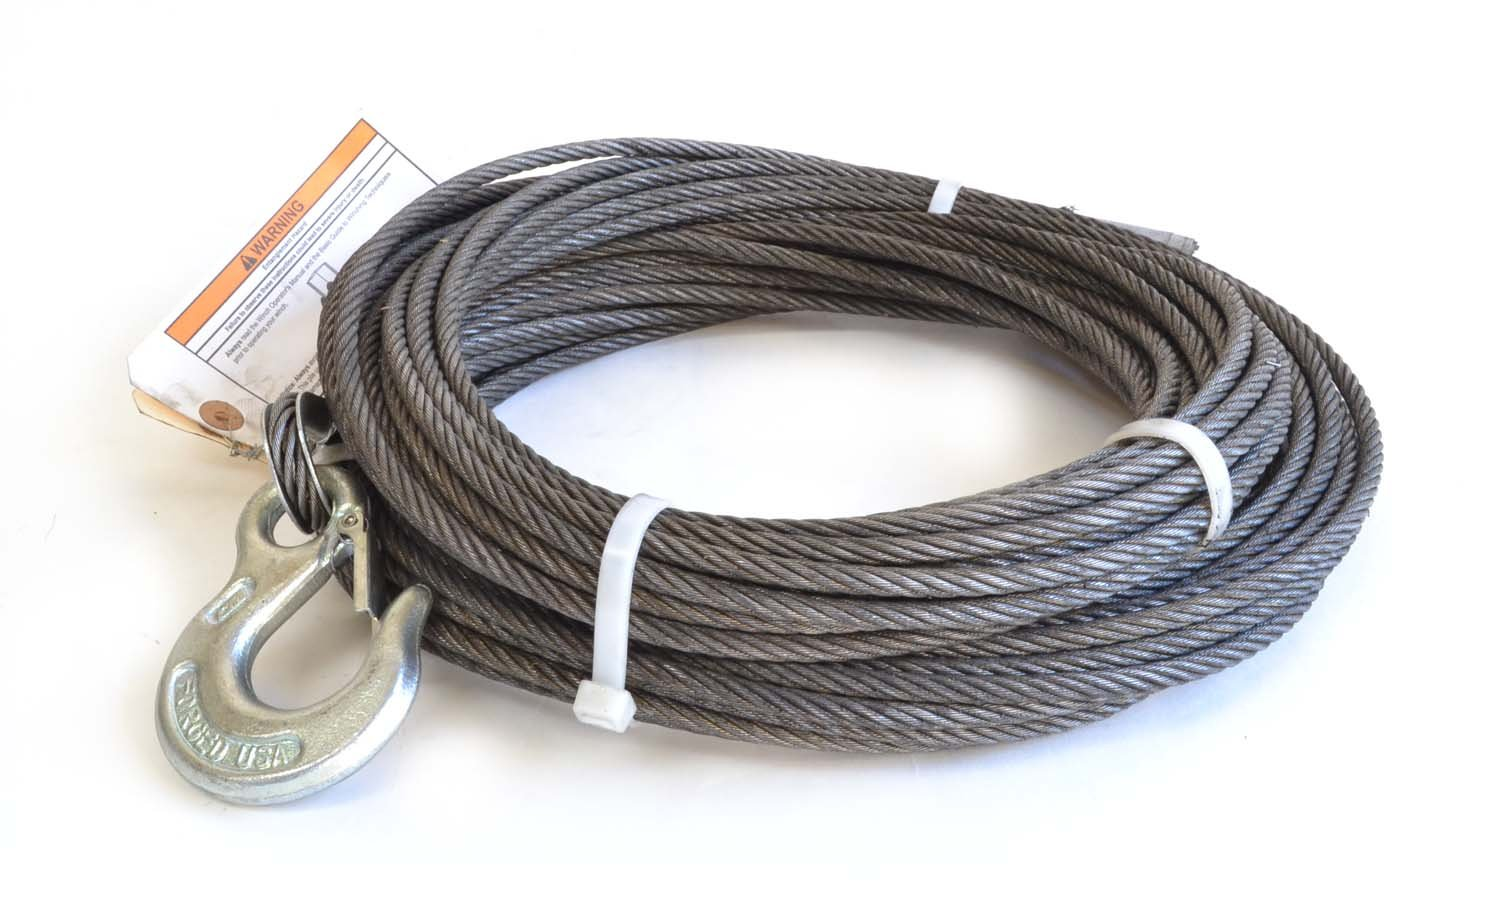 1//4 x 100 1//4 x 100/' WARN 24893 Wire Rope Assembly